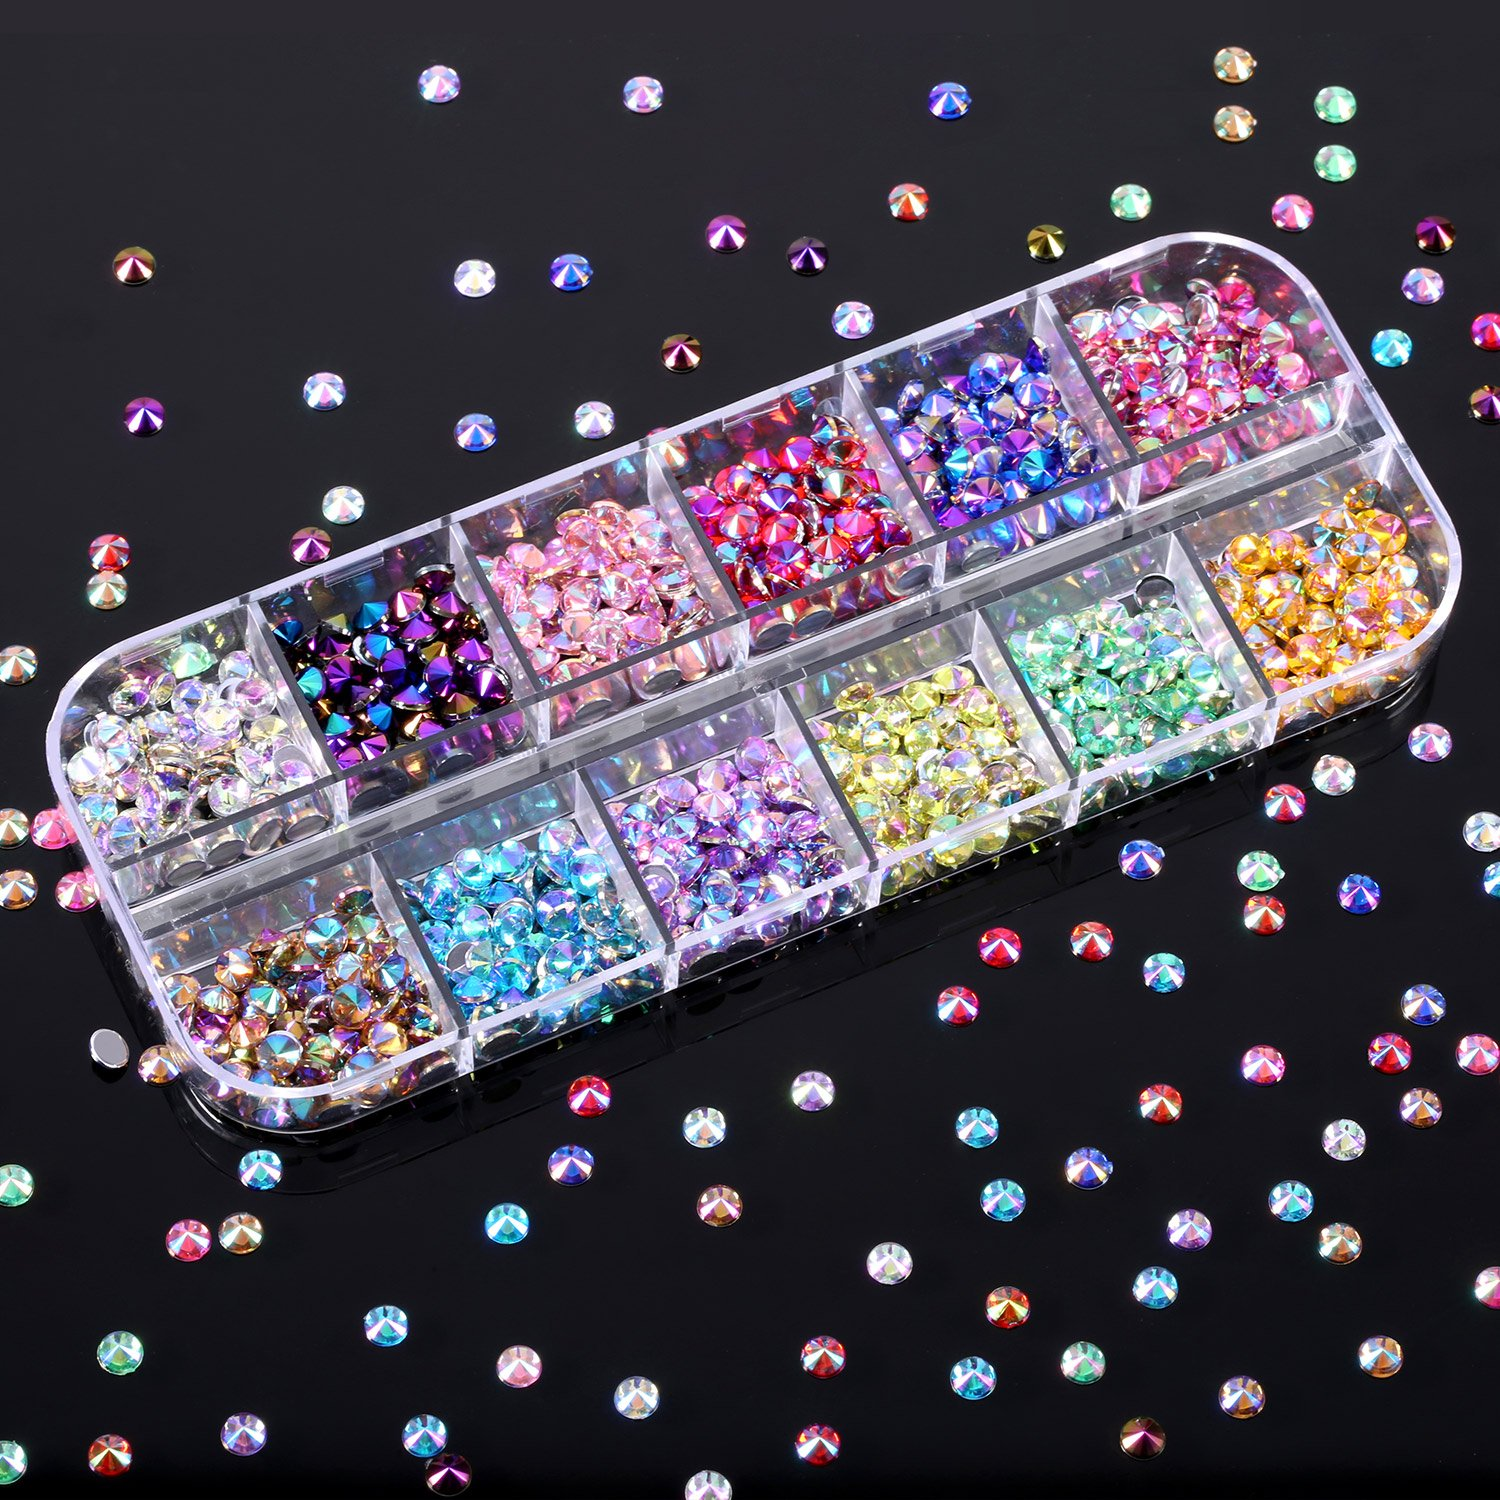 Bememo 4300 Pieces (4 Boxes) Nail Art Rhinestones Kit Nail Rhinestones with 1 Piece 1 Pick up Tweezers, Multicolor Nail Studs Horse Eye Rhinestones for Nail Art Decorations Supplies by Bememo (Image #5)